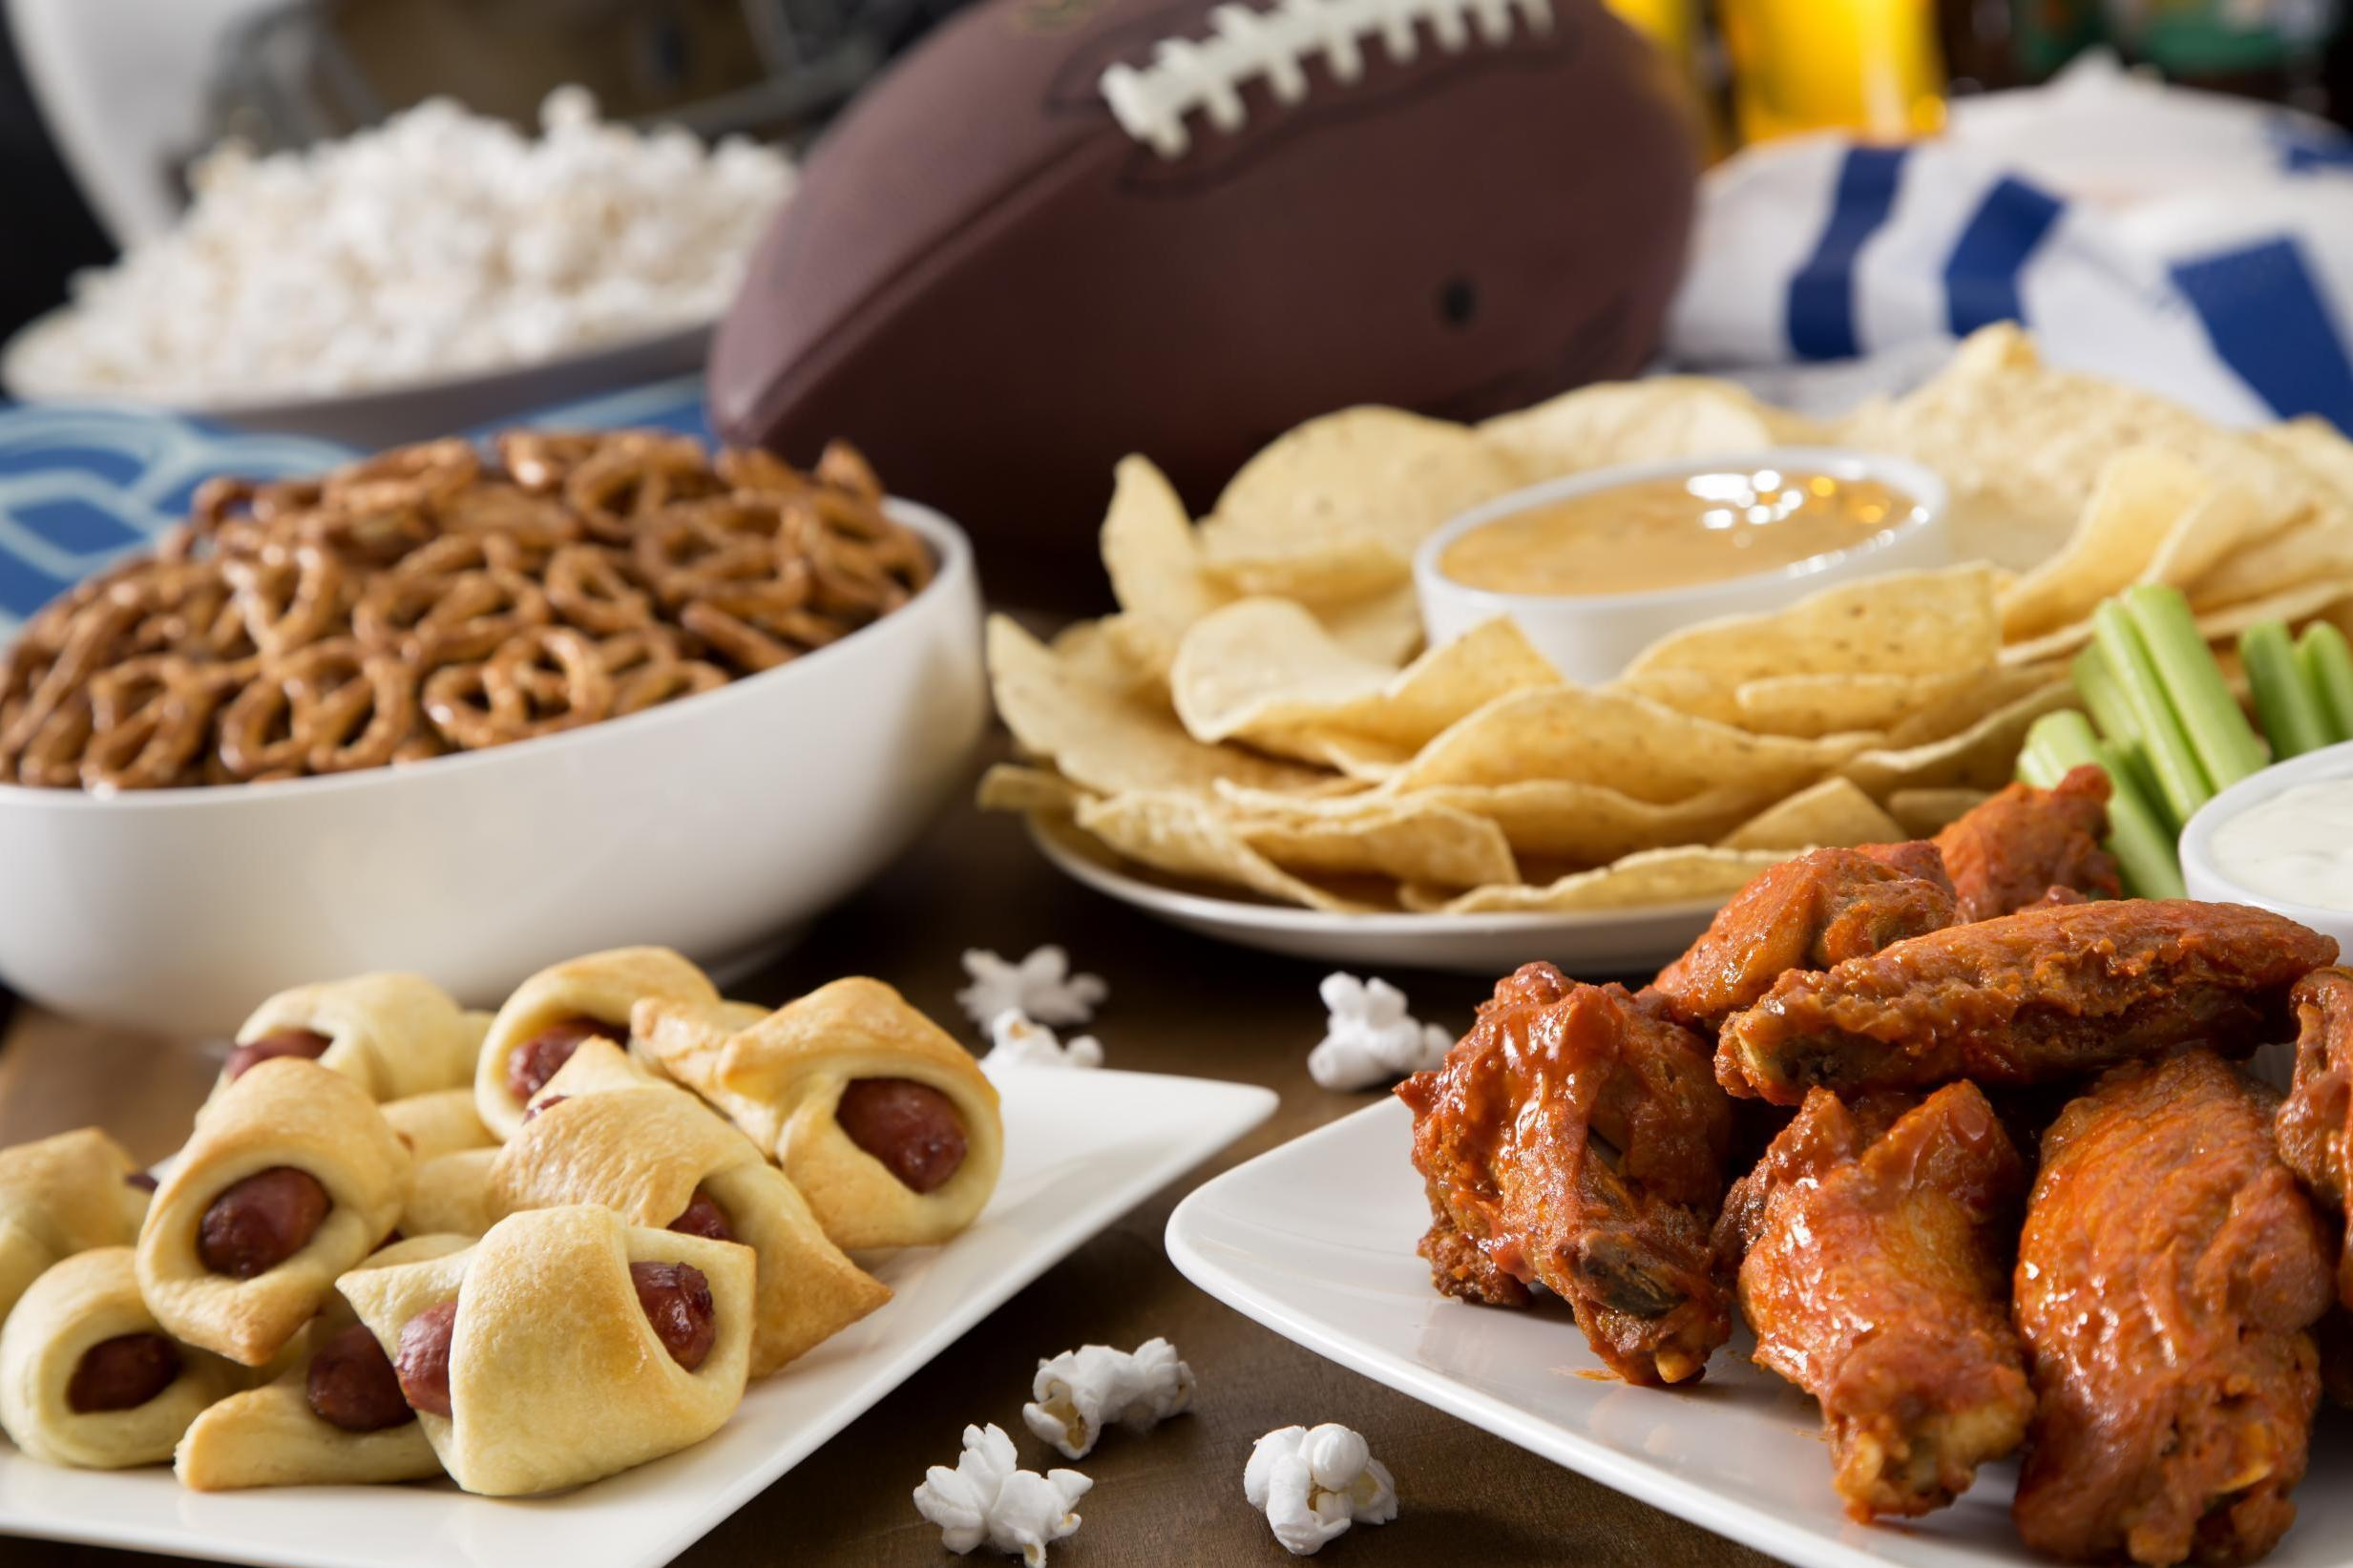 Super Bowl food: Six recipes perfect for game day 1